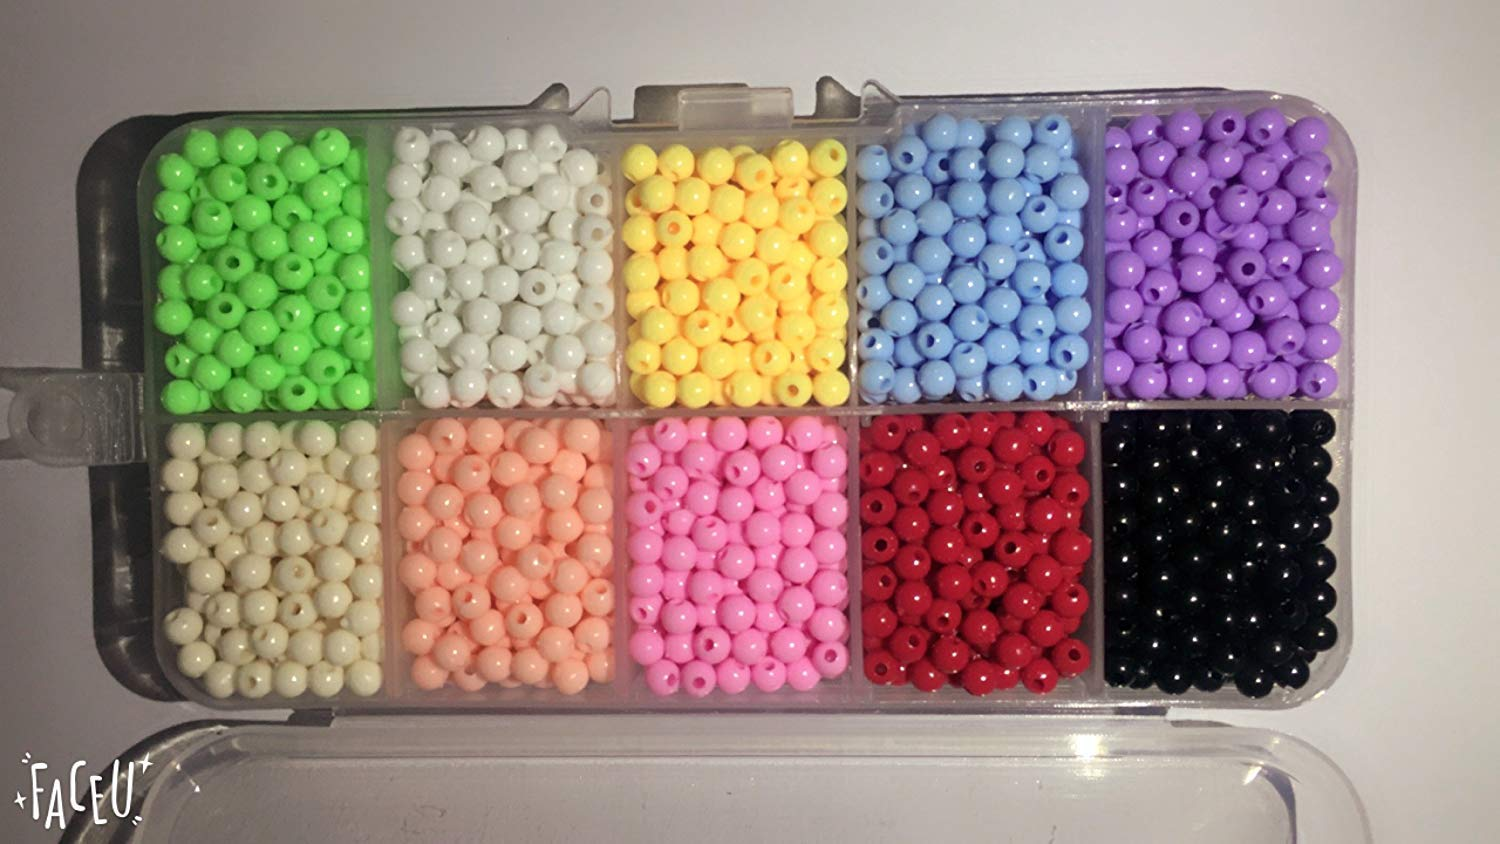 Zhiwen 2000 pieces of bulk plastic rainbow opaque mixed color pony beads handmade jewelry beads Assortment Box Set Value Pack(4mm,Boxed)